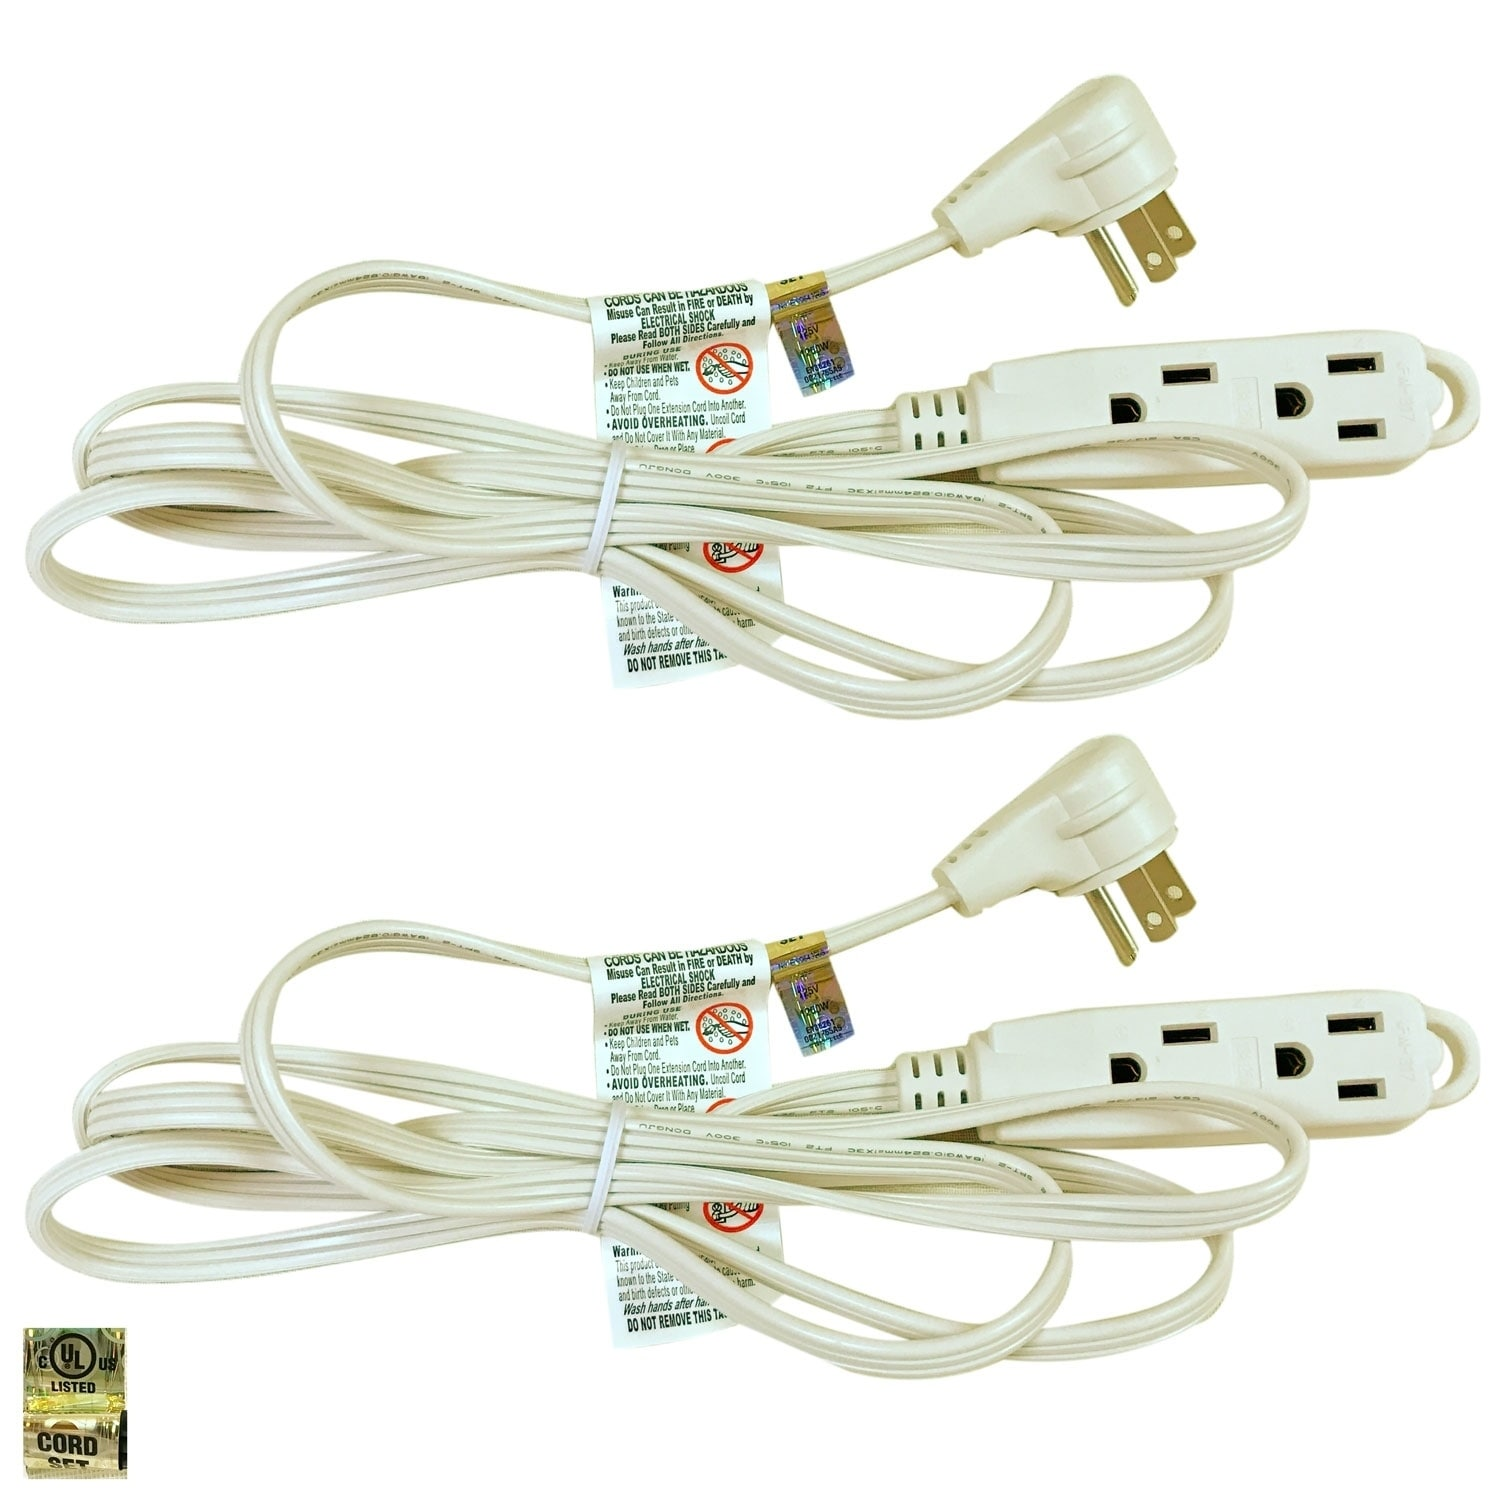 Royal Designs White 8 Foot Indoor/Outdoor Extension Cord, Set of 2 ...